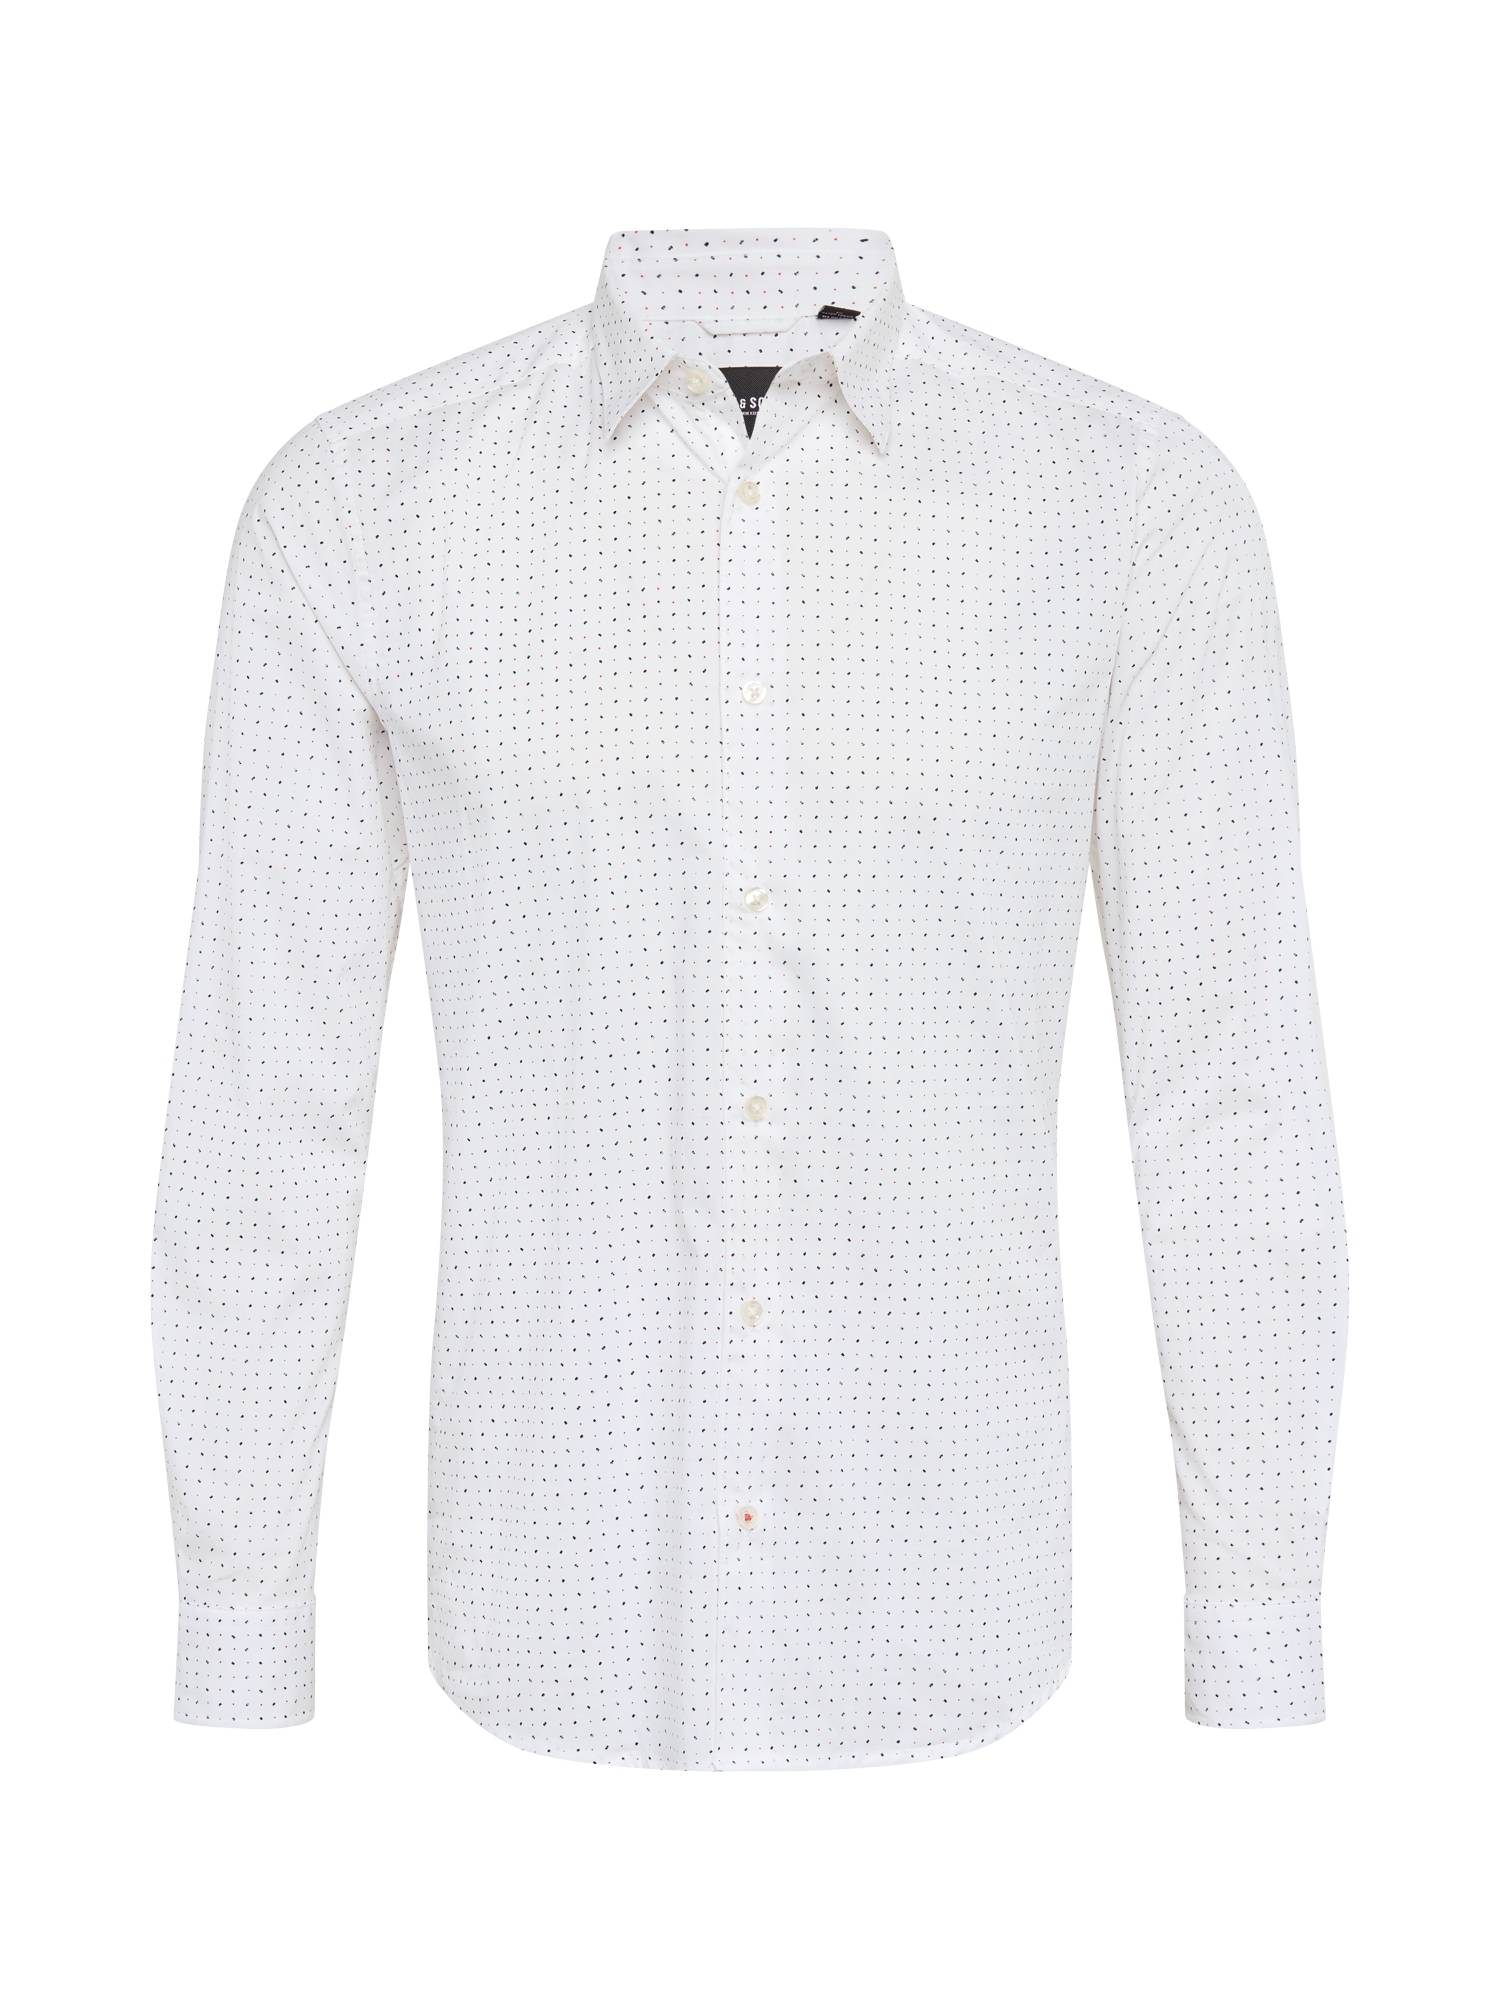 Only & Sons Chemise 'BART'  - Blanc - Taille: S - male